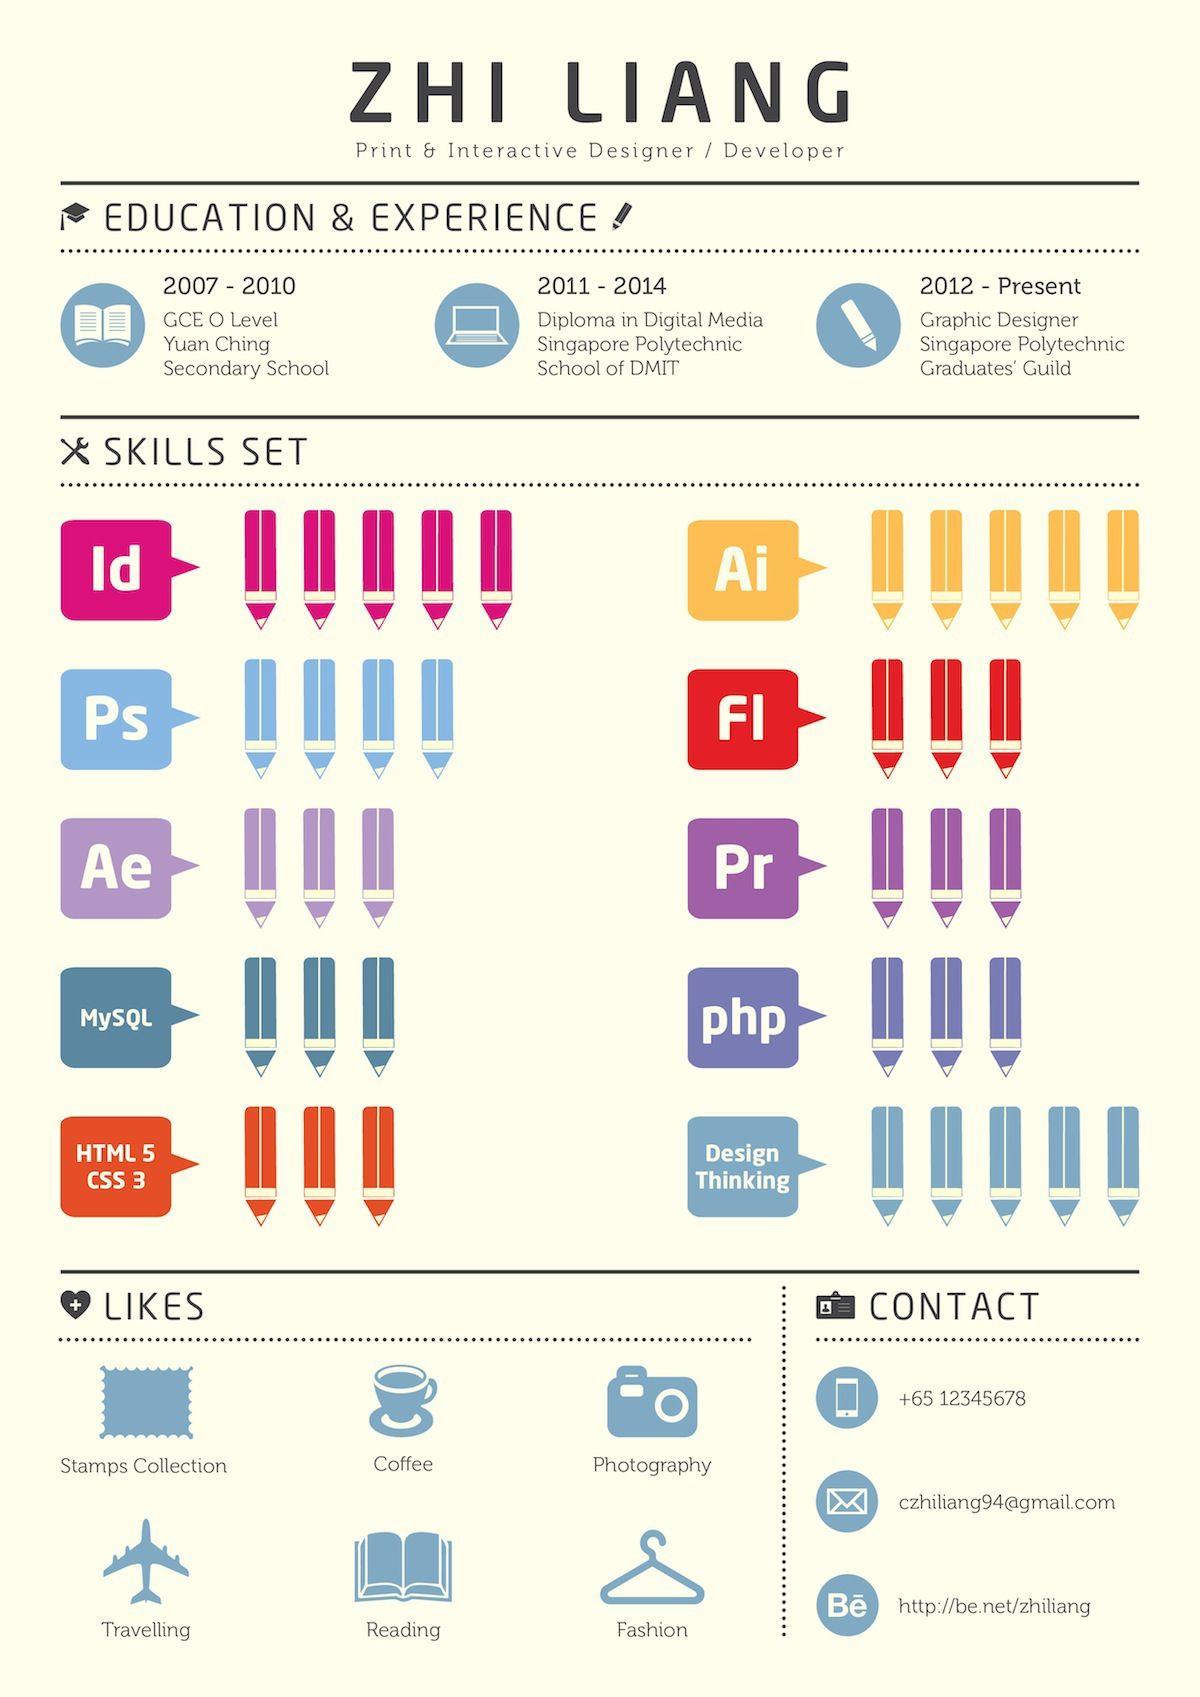 An infographic resume for self promotion. | CV | Pinterest